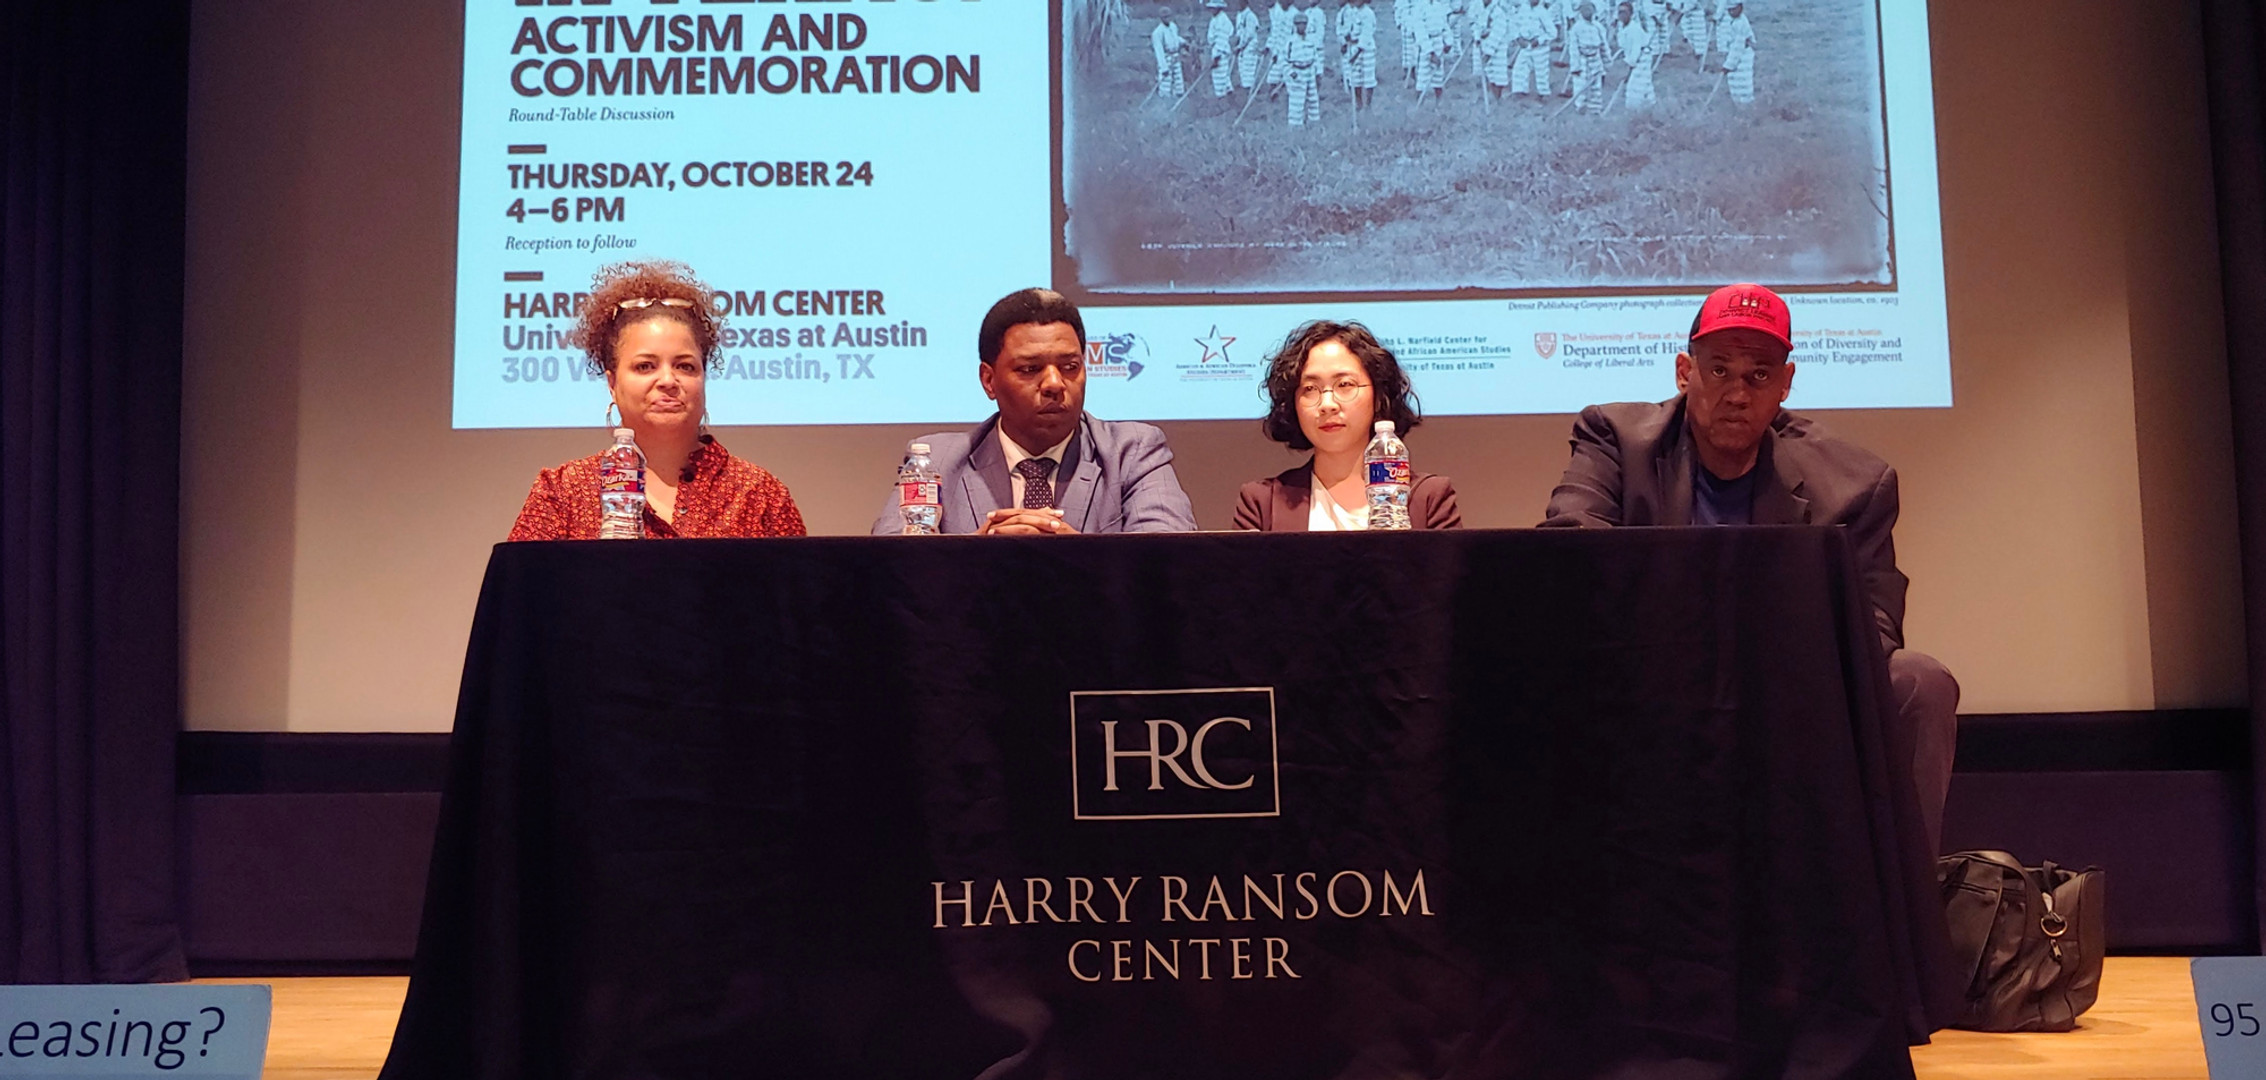 Convict Leasing in Texas: Activism and Commemoration